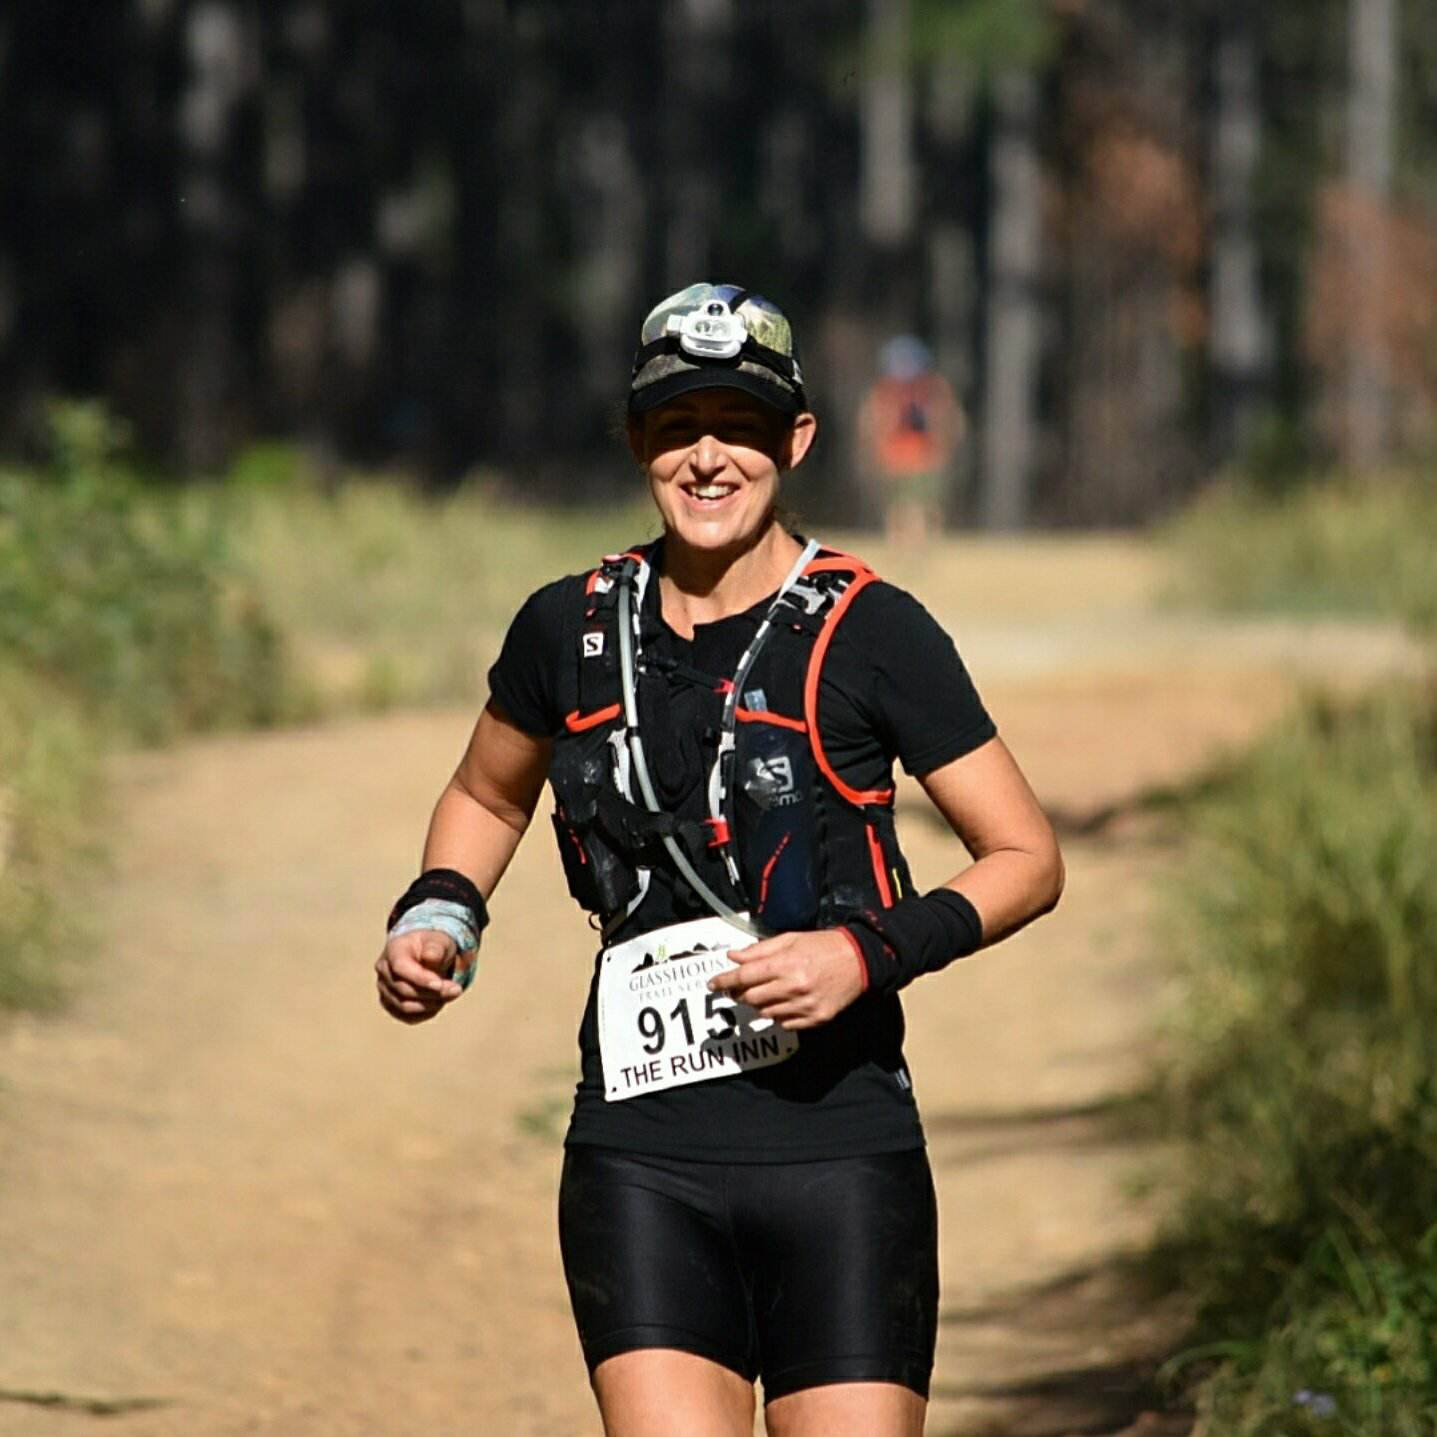 """Returning from injury, I noticed the difference as soon as I hit the trails."" - — JILL THOMPSON, ULTRA-RUNNER"